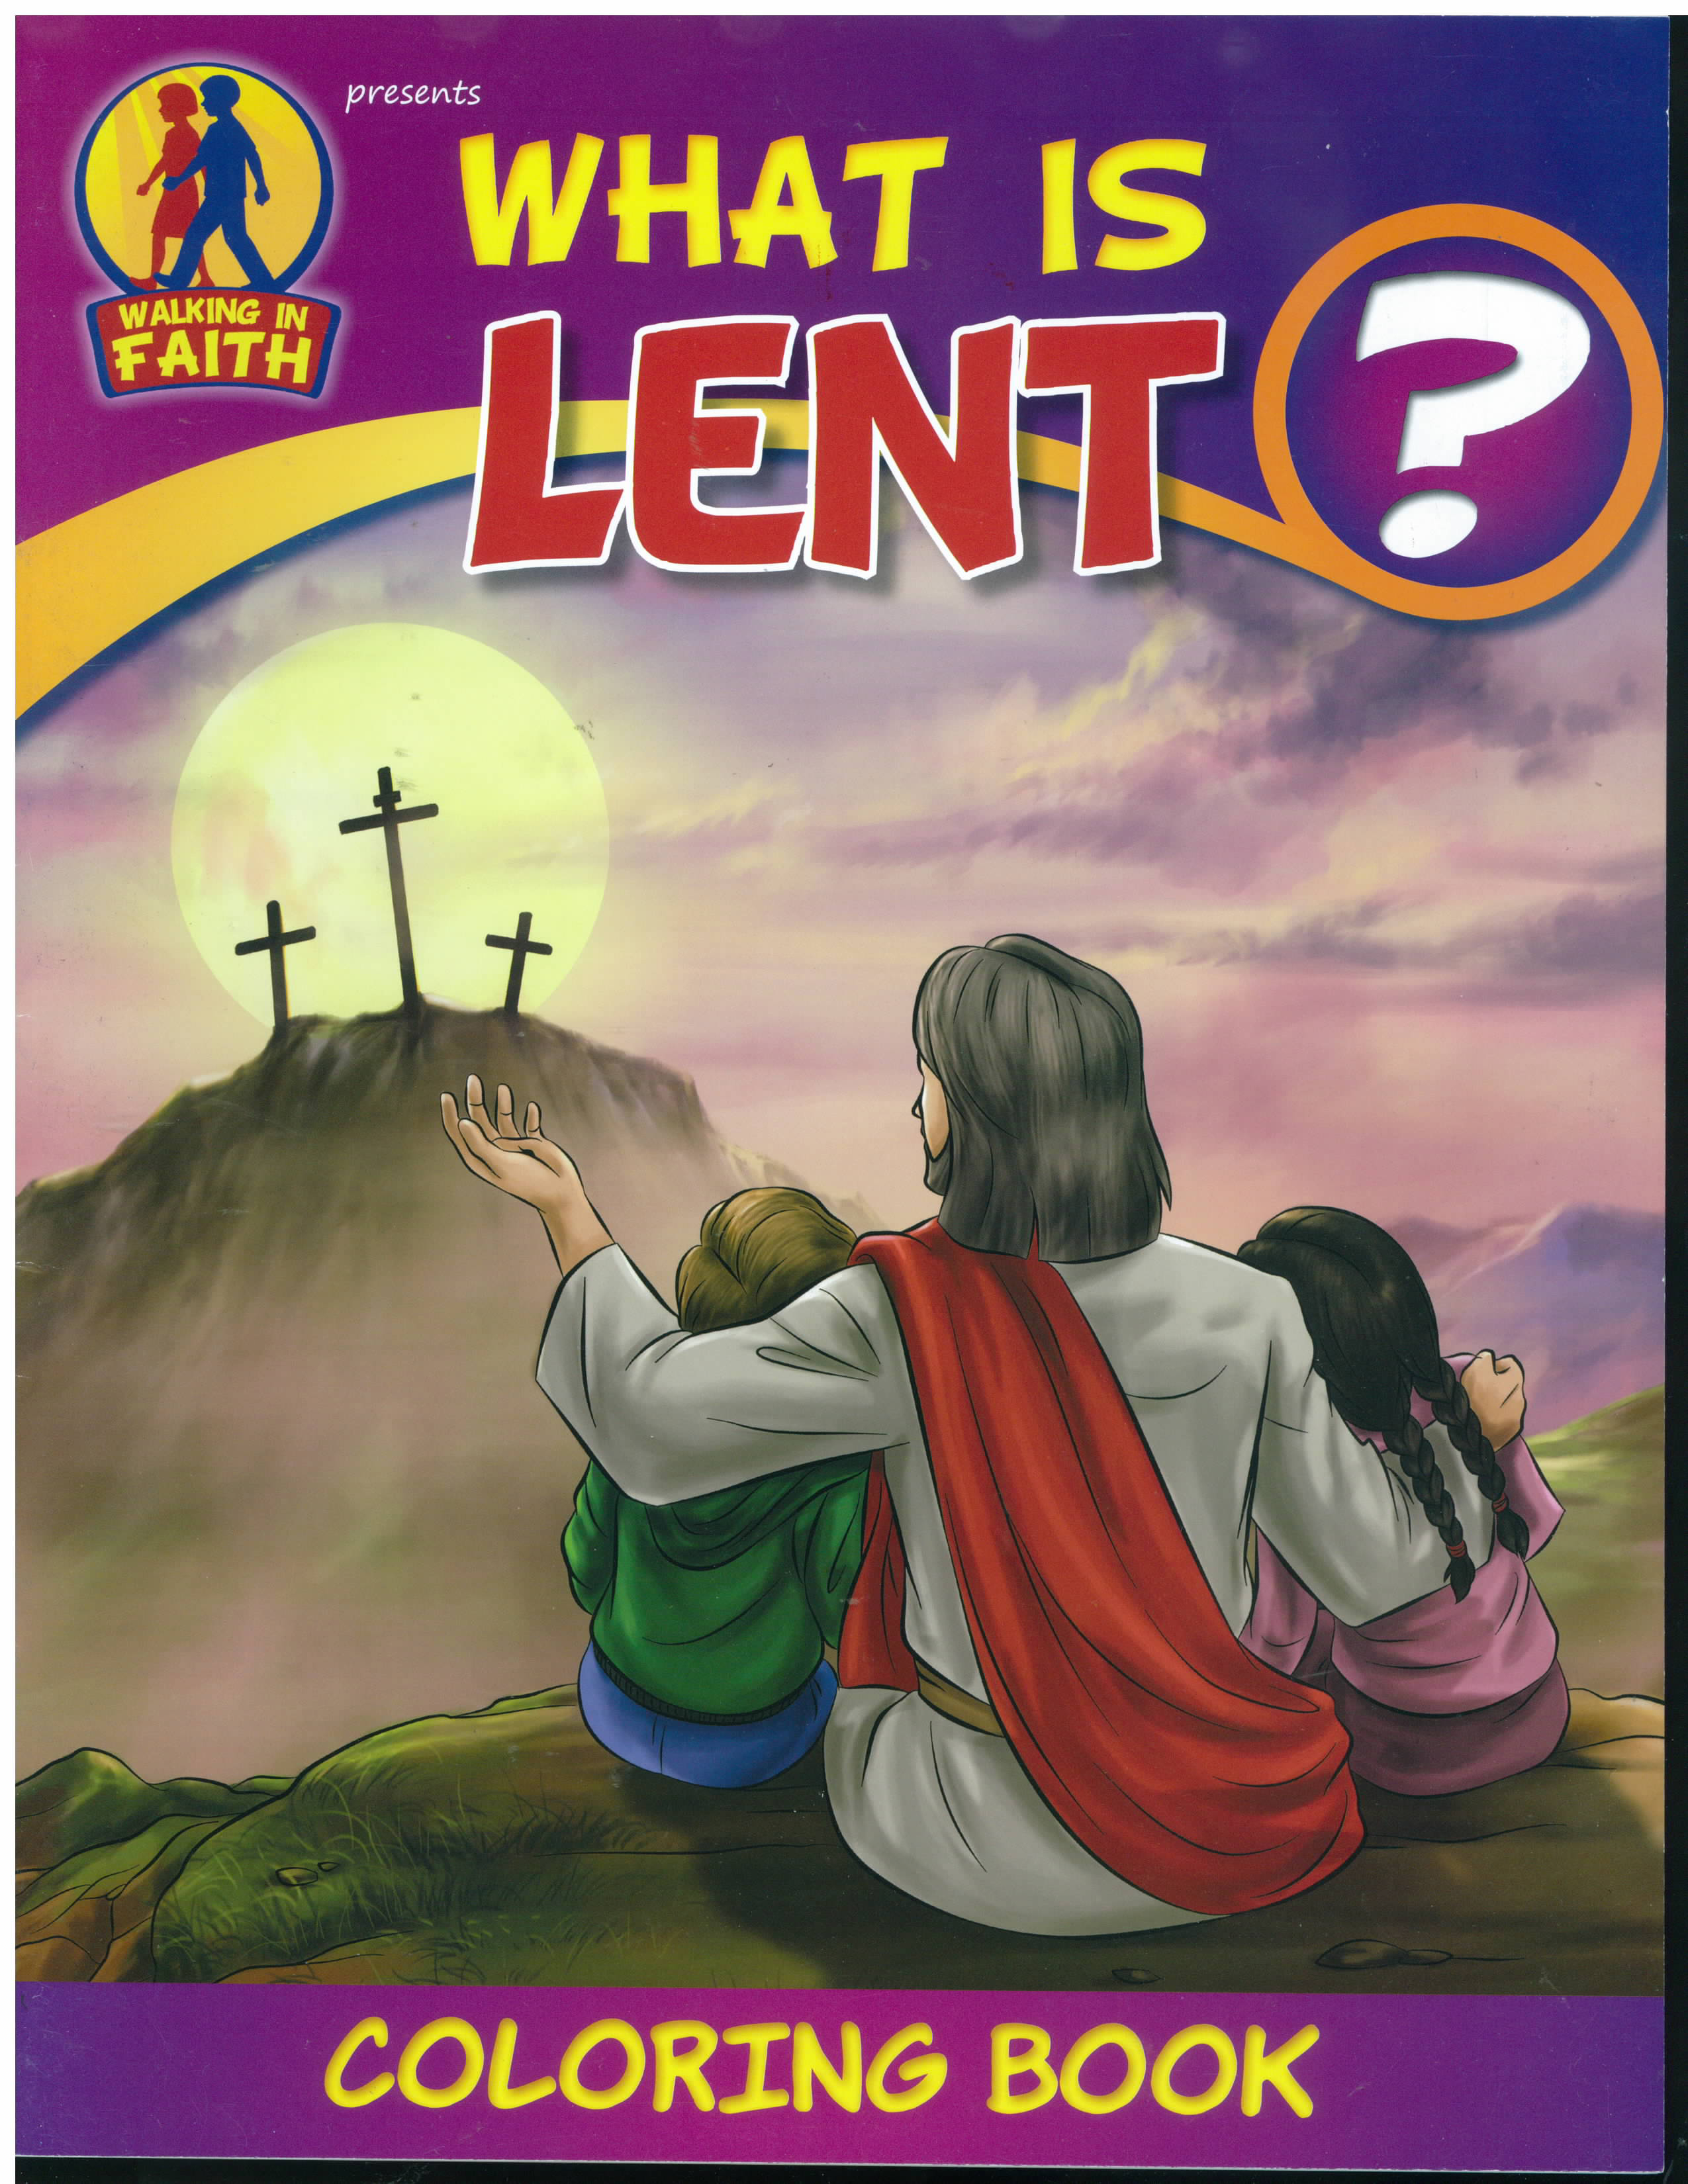 What is Lent? Walking in Faith Coloring Book-WIF-LENT